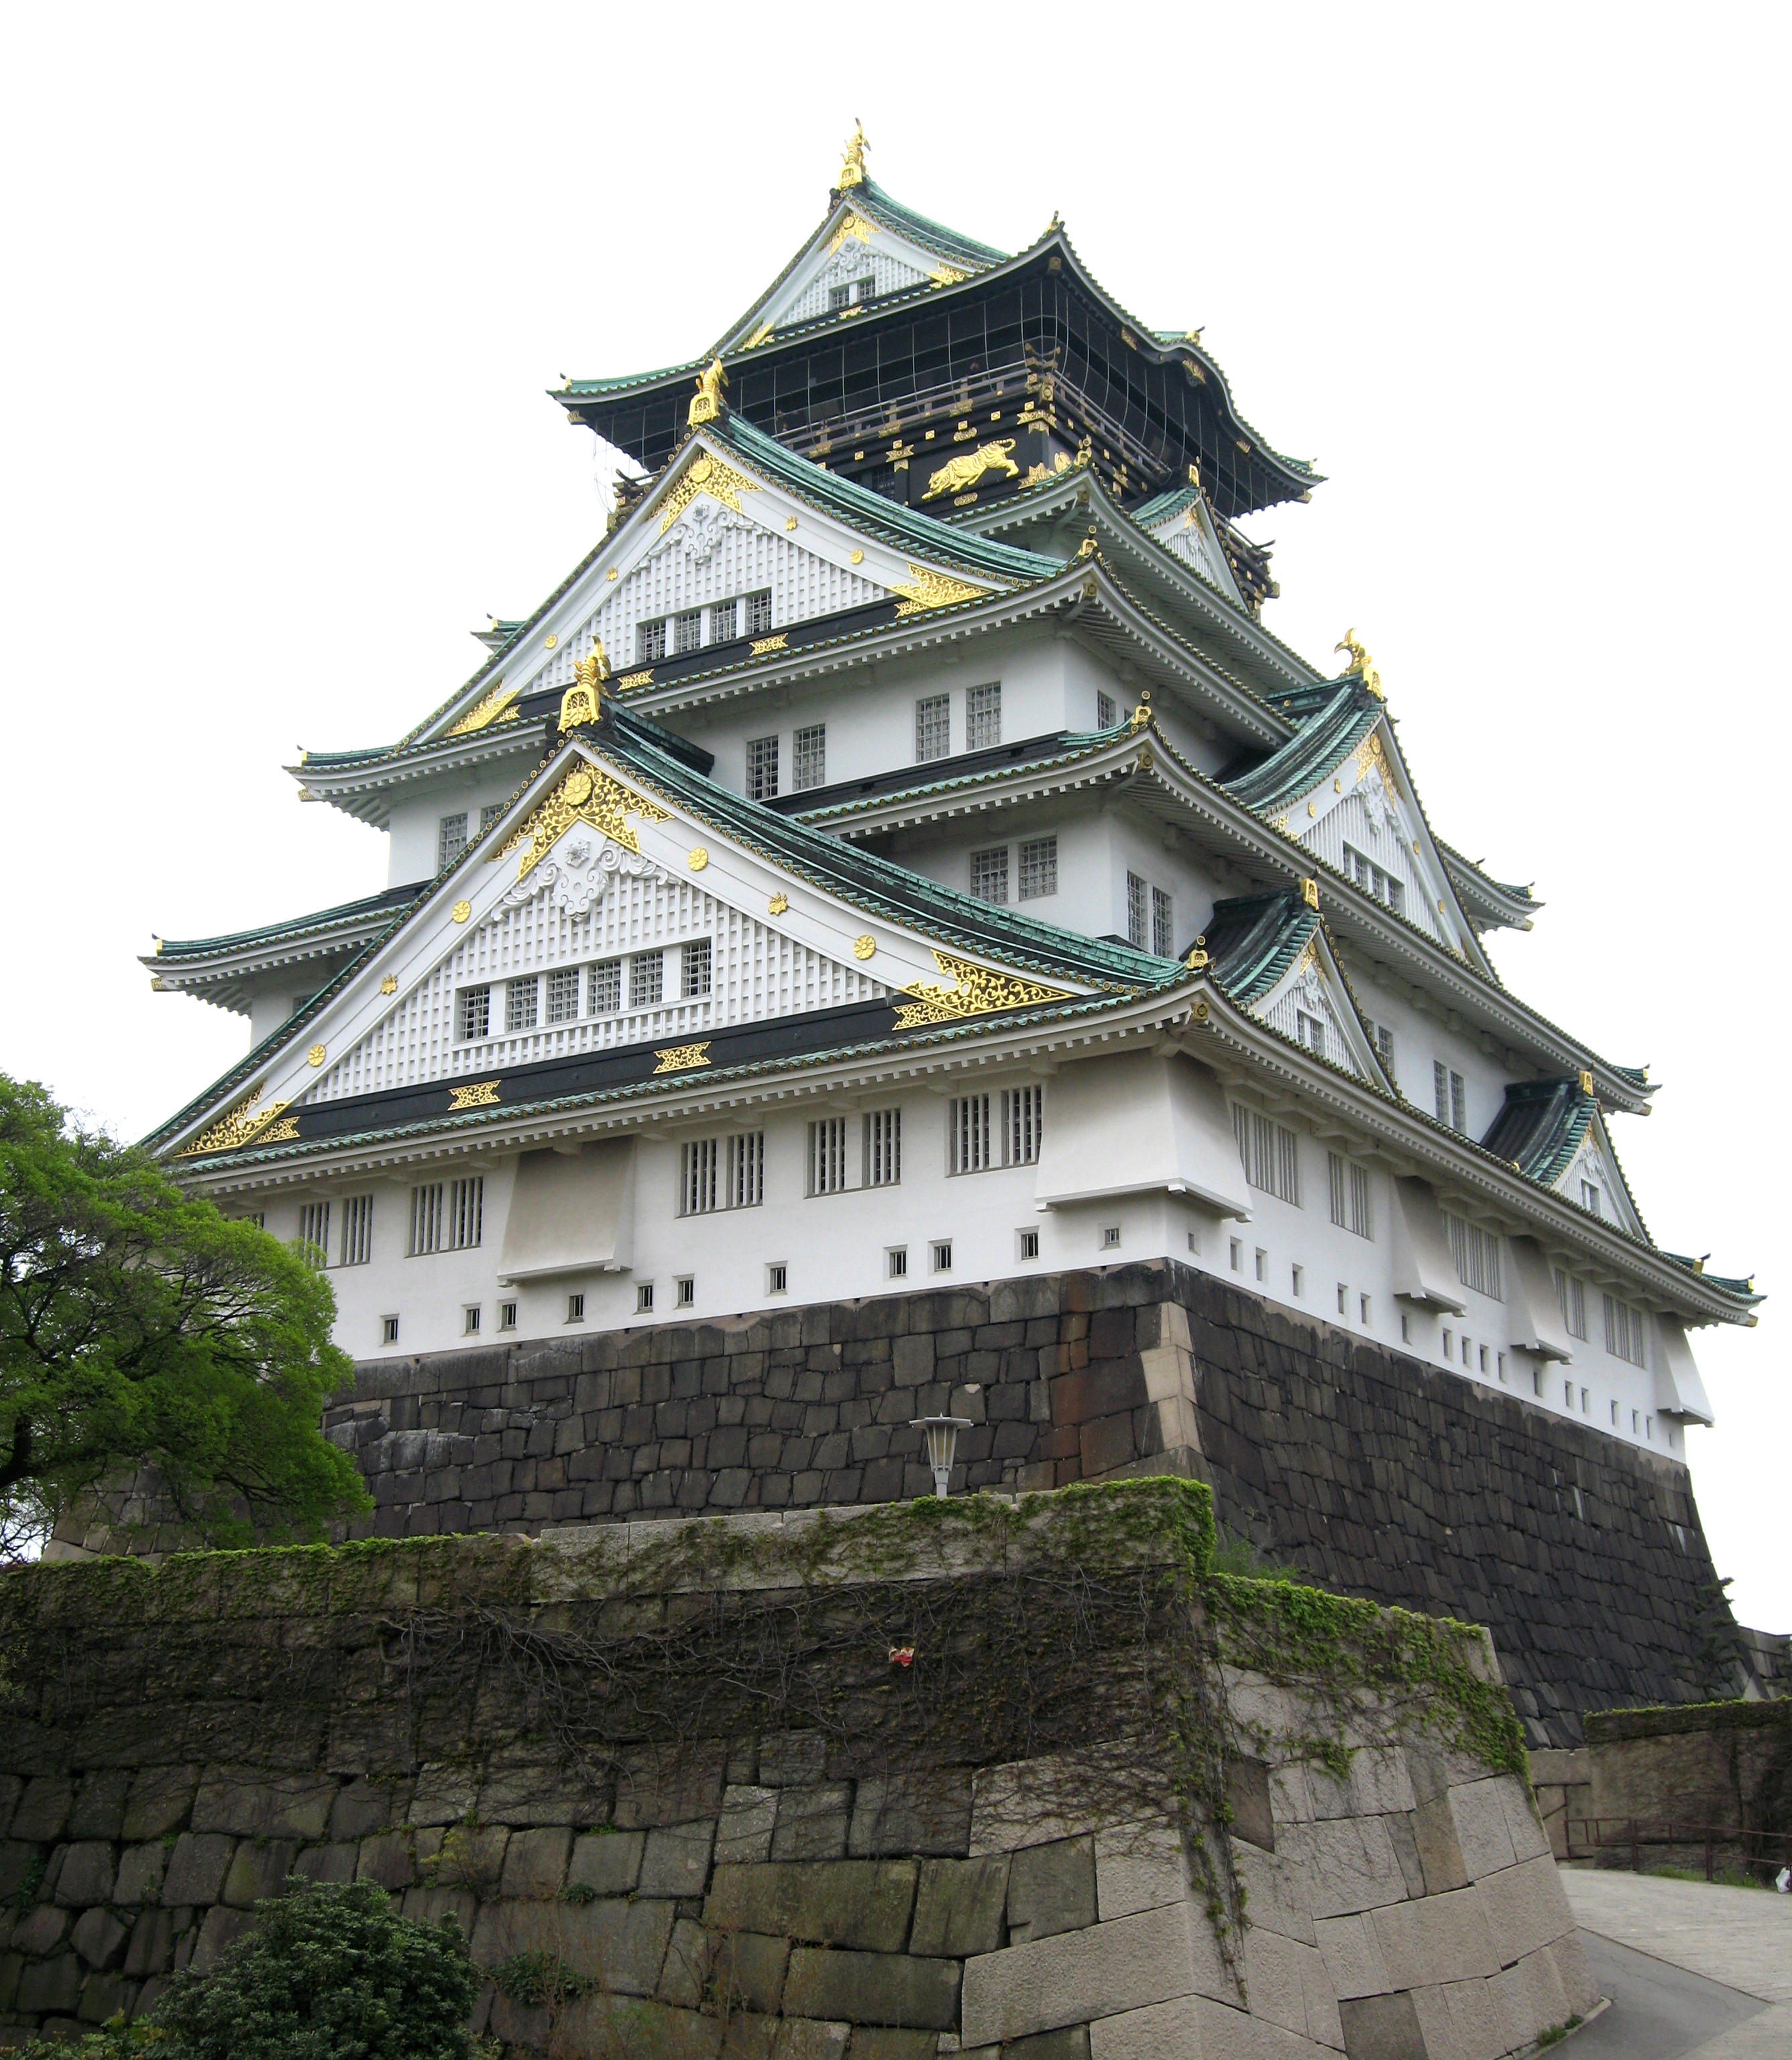 File:Osaka jo Castle.jpg - Wikimedia Commons